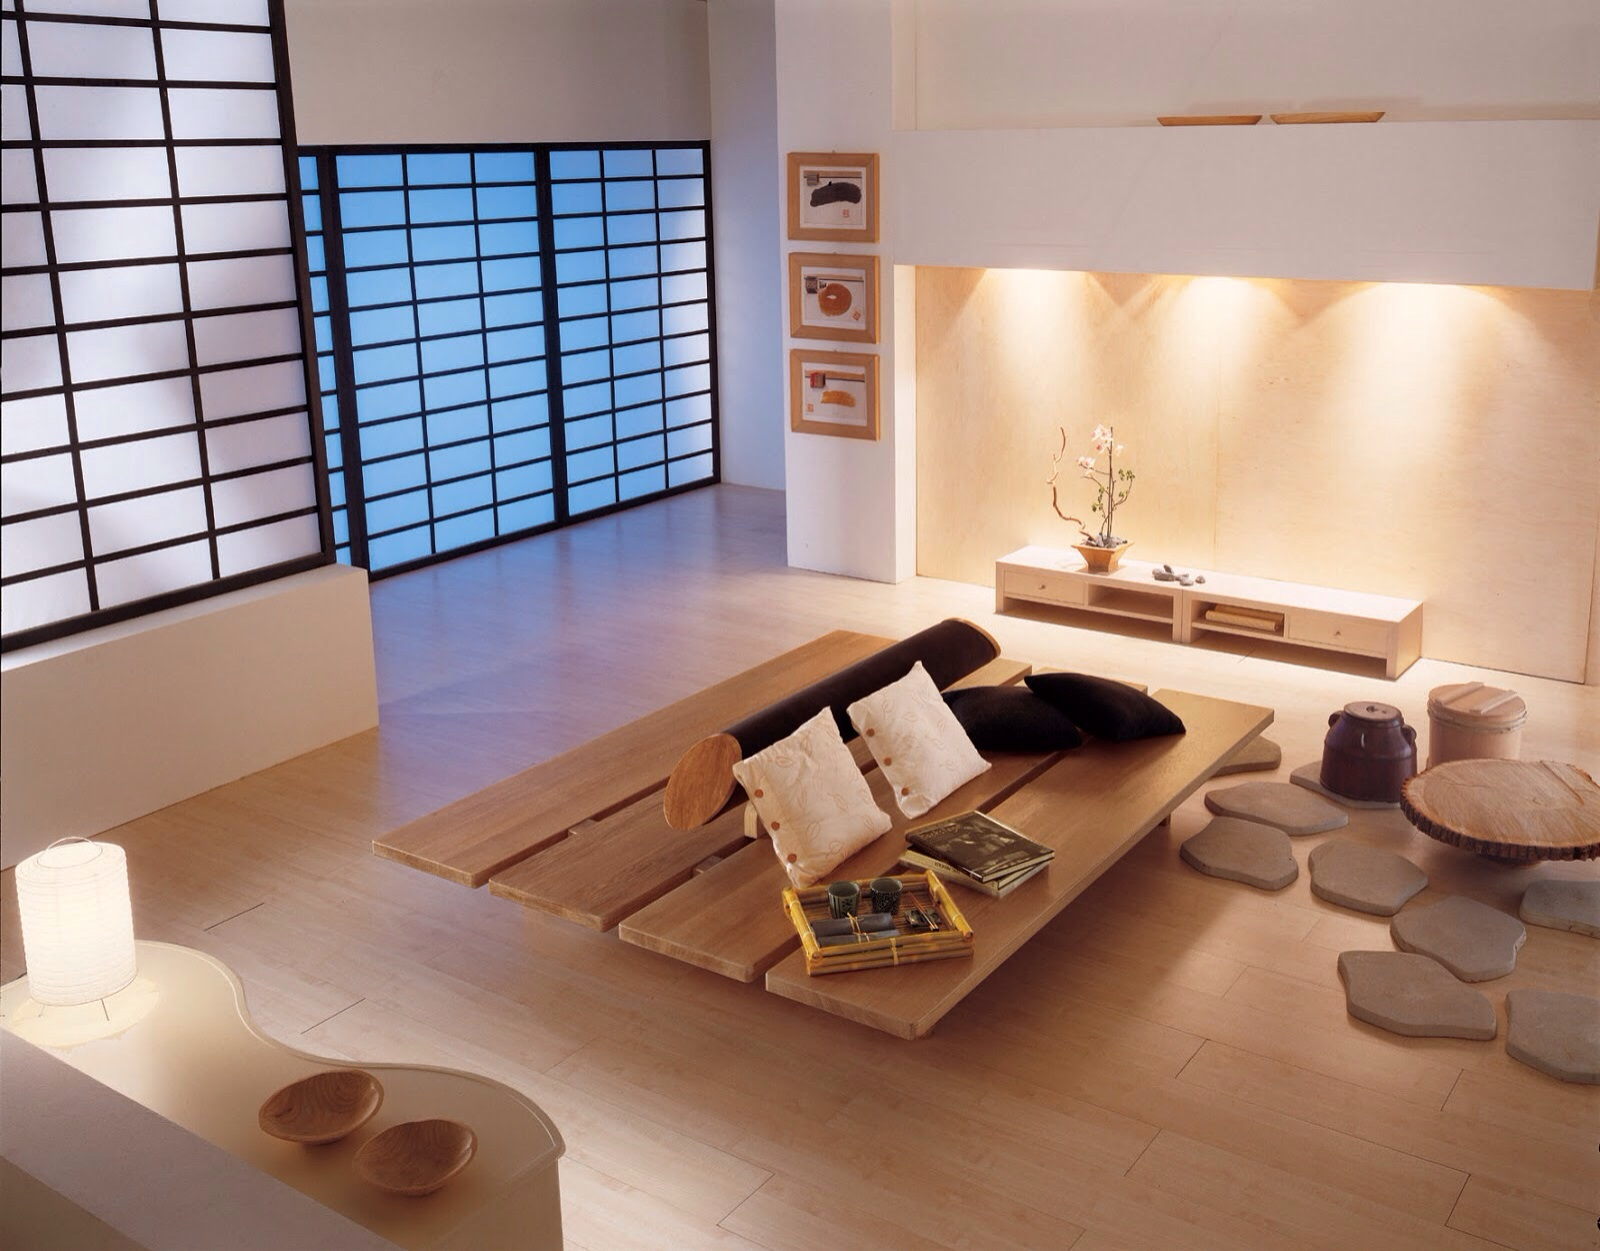 Zen Inspired Interior Design on